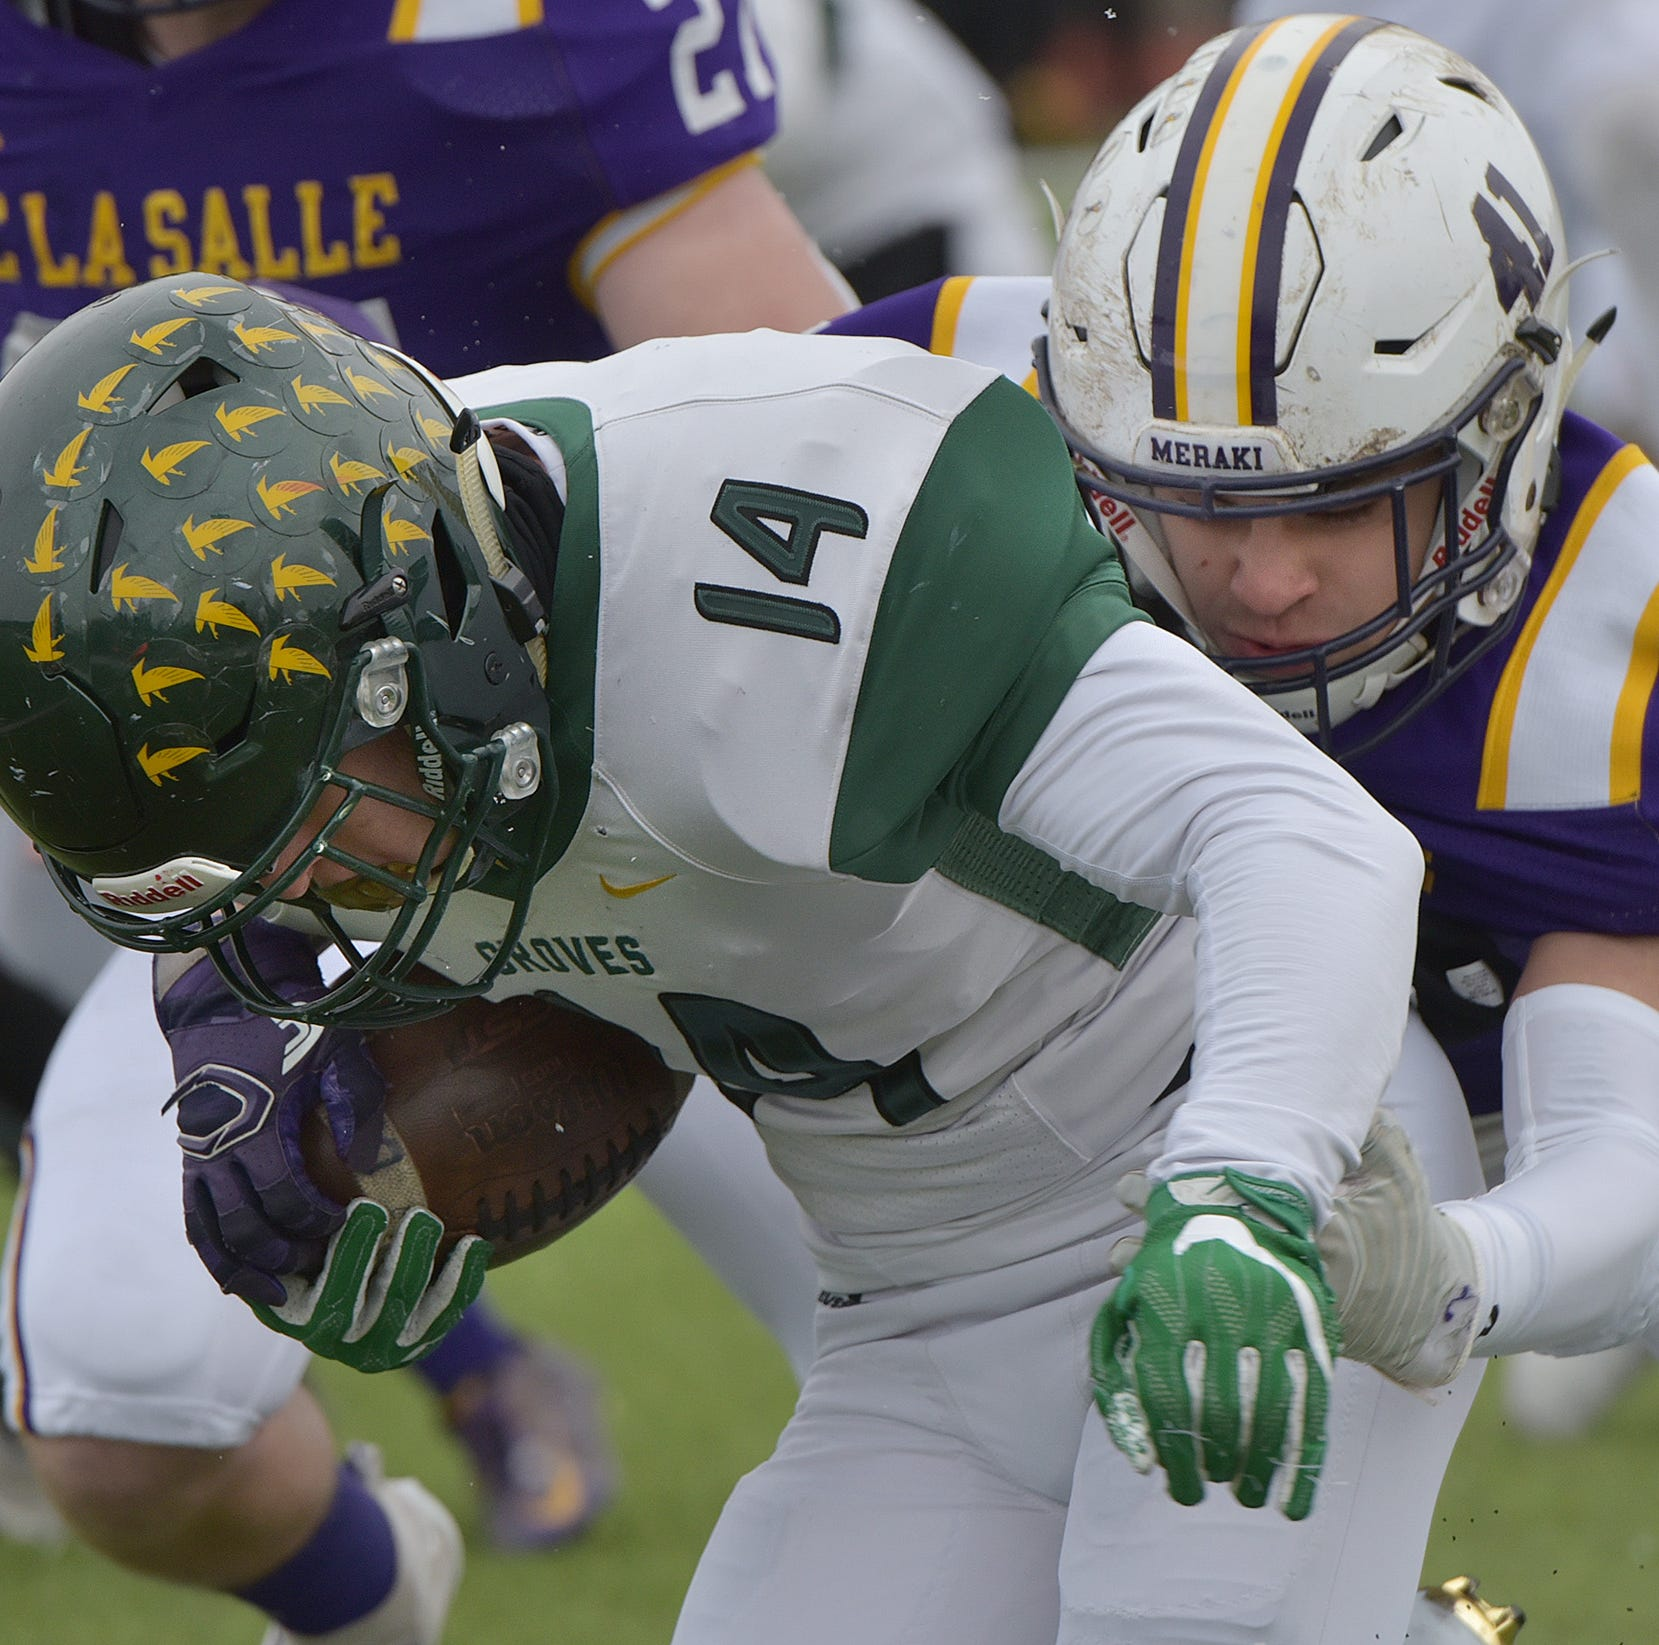 De La Salle's defense dooms Groves in Division 2 semifinal battle